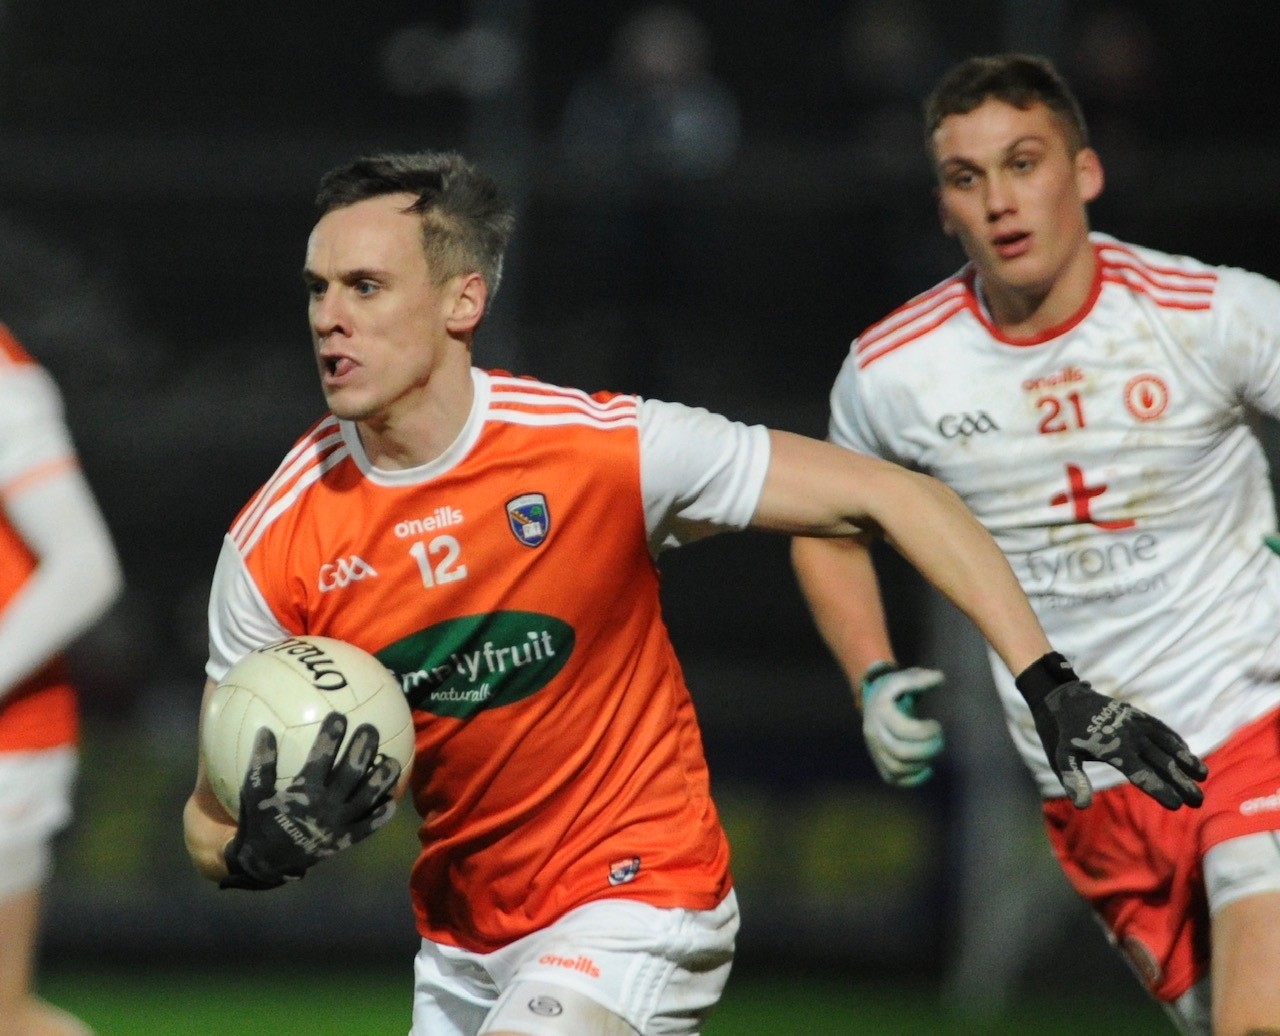 Match Report: Tyrone secure semi final spot after six-goal thriller